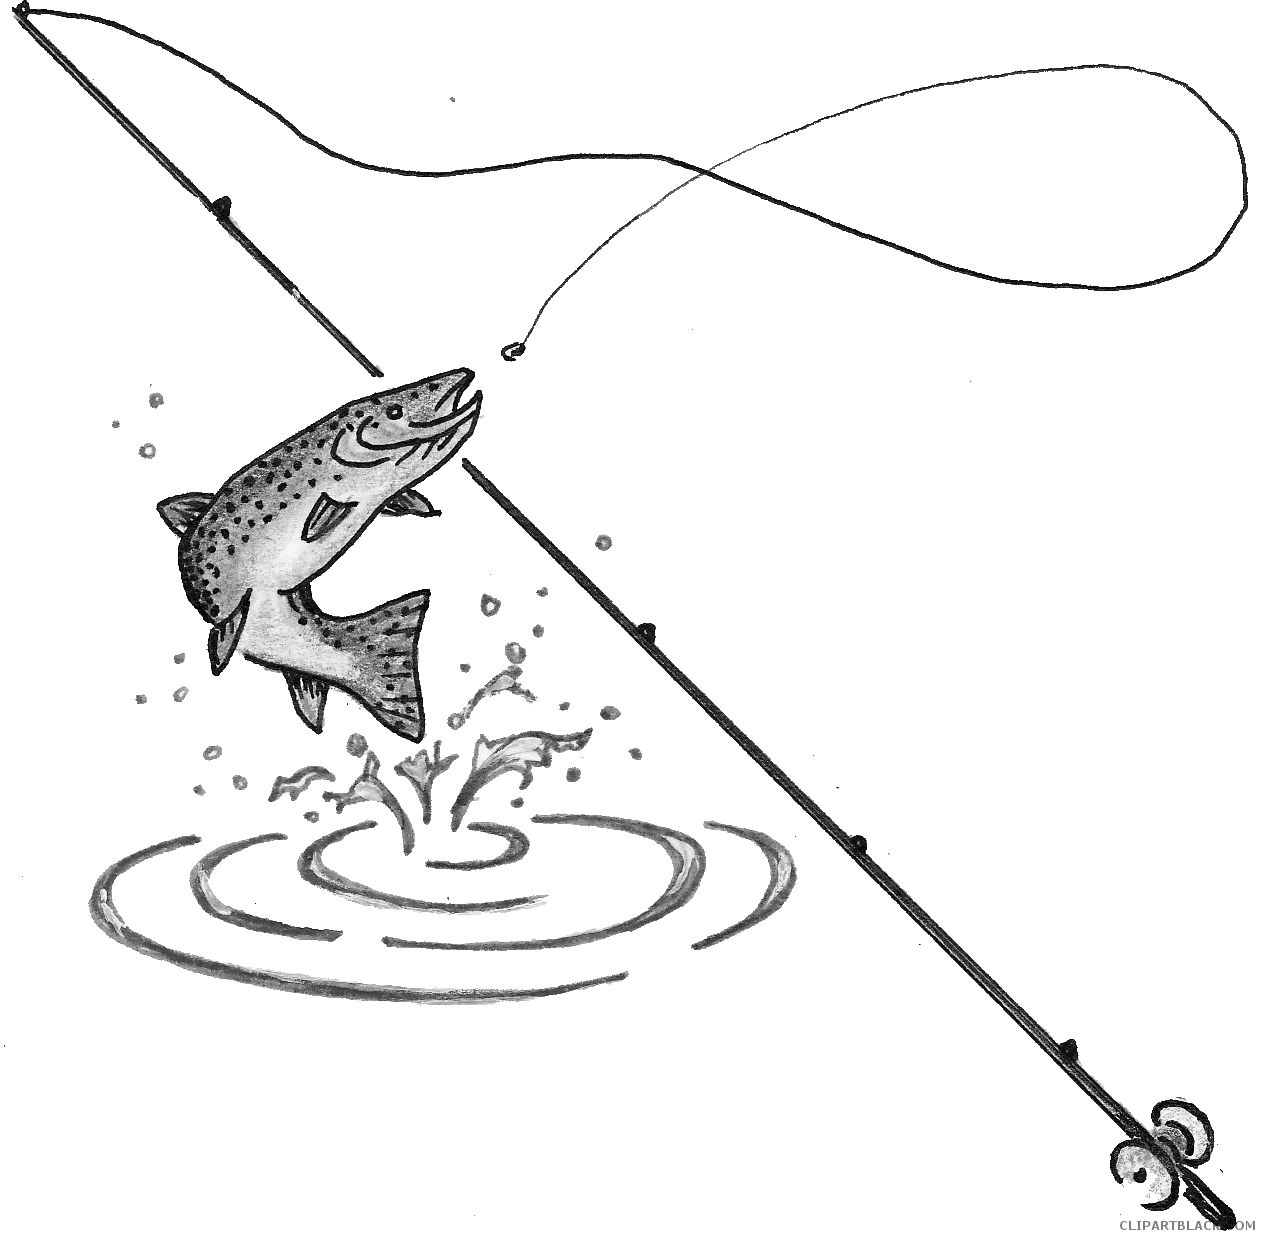 Fishing pole and fish clipart png Fishing Pole Clipart - Page 2 of 2 - ClipartBlack.com png